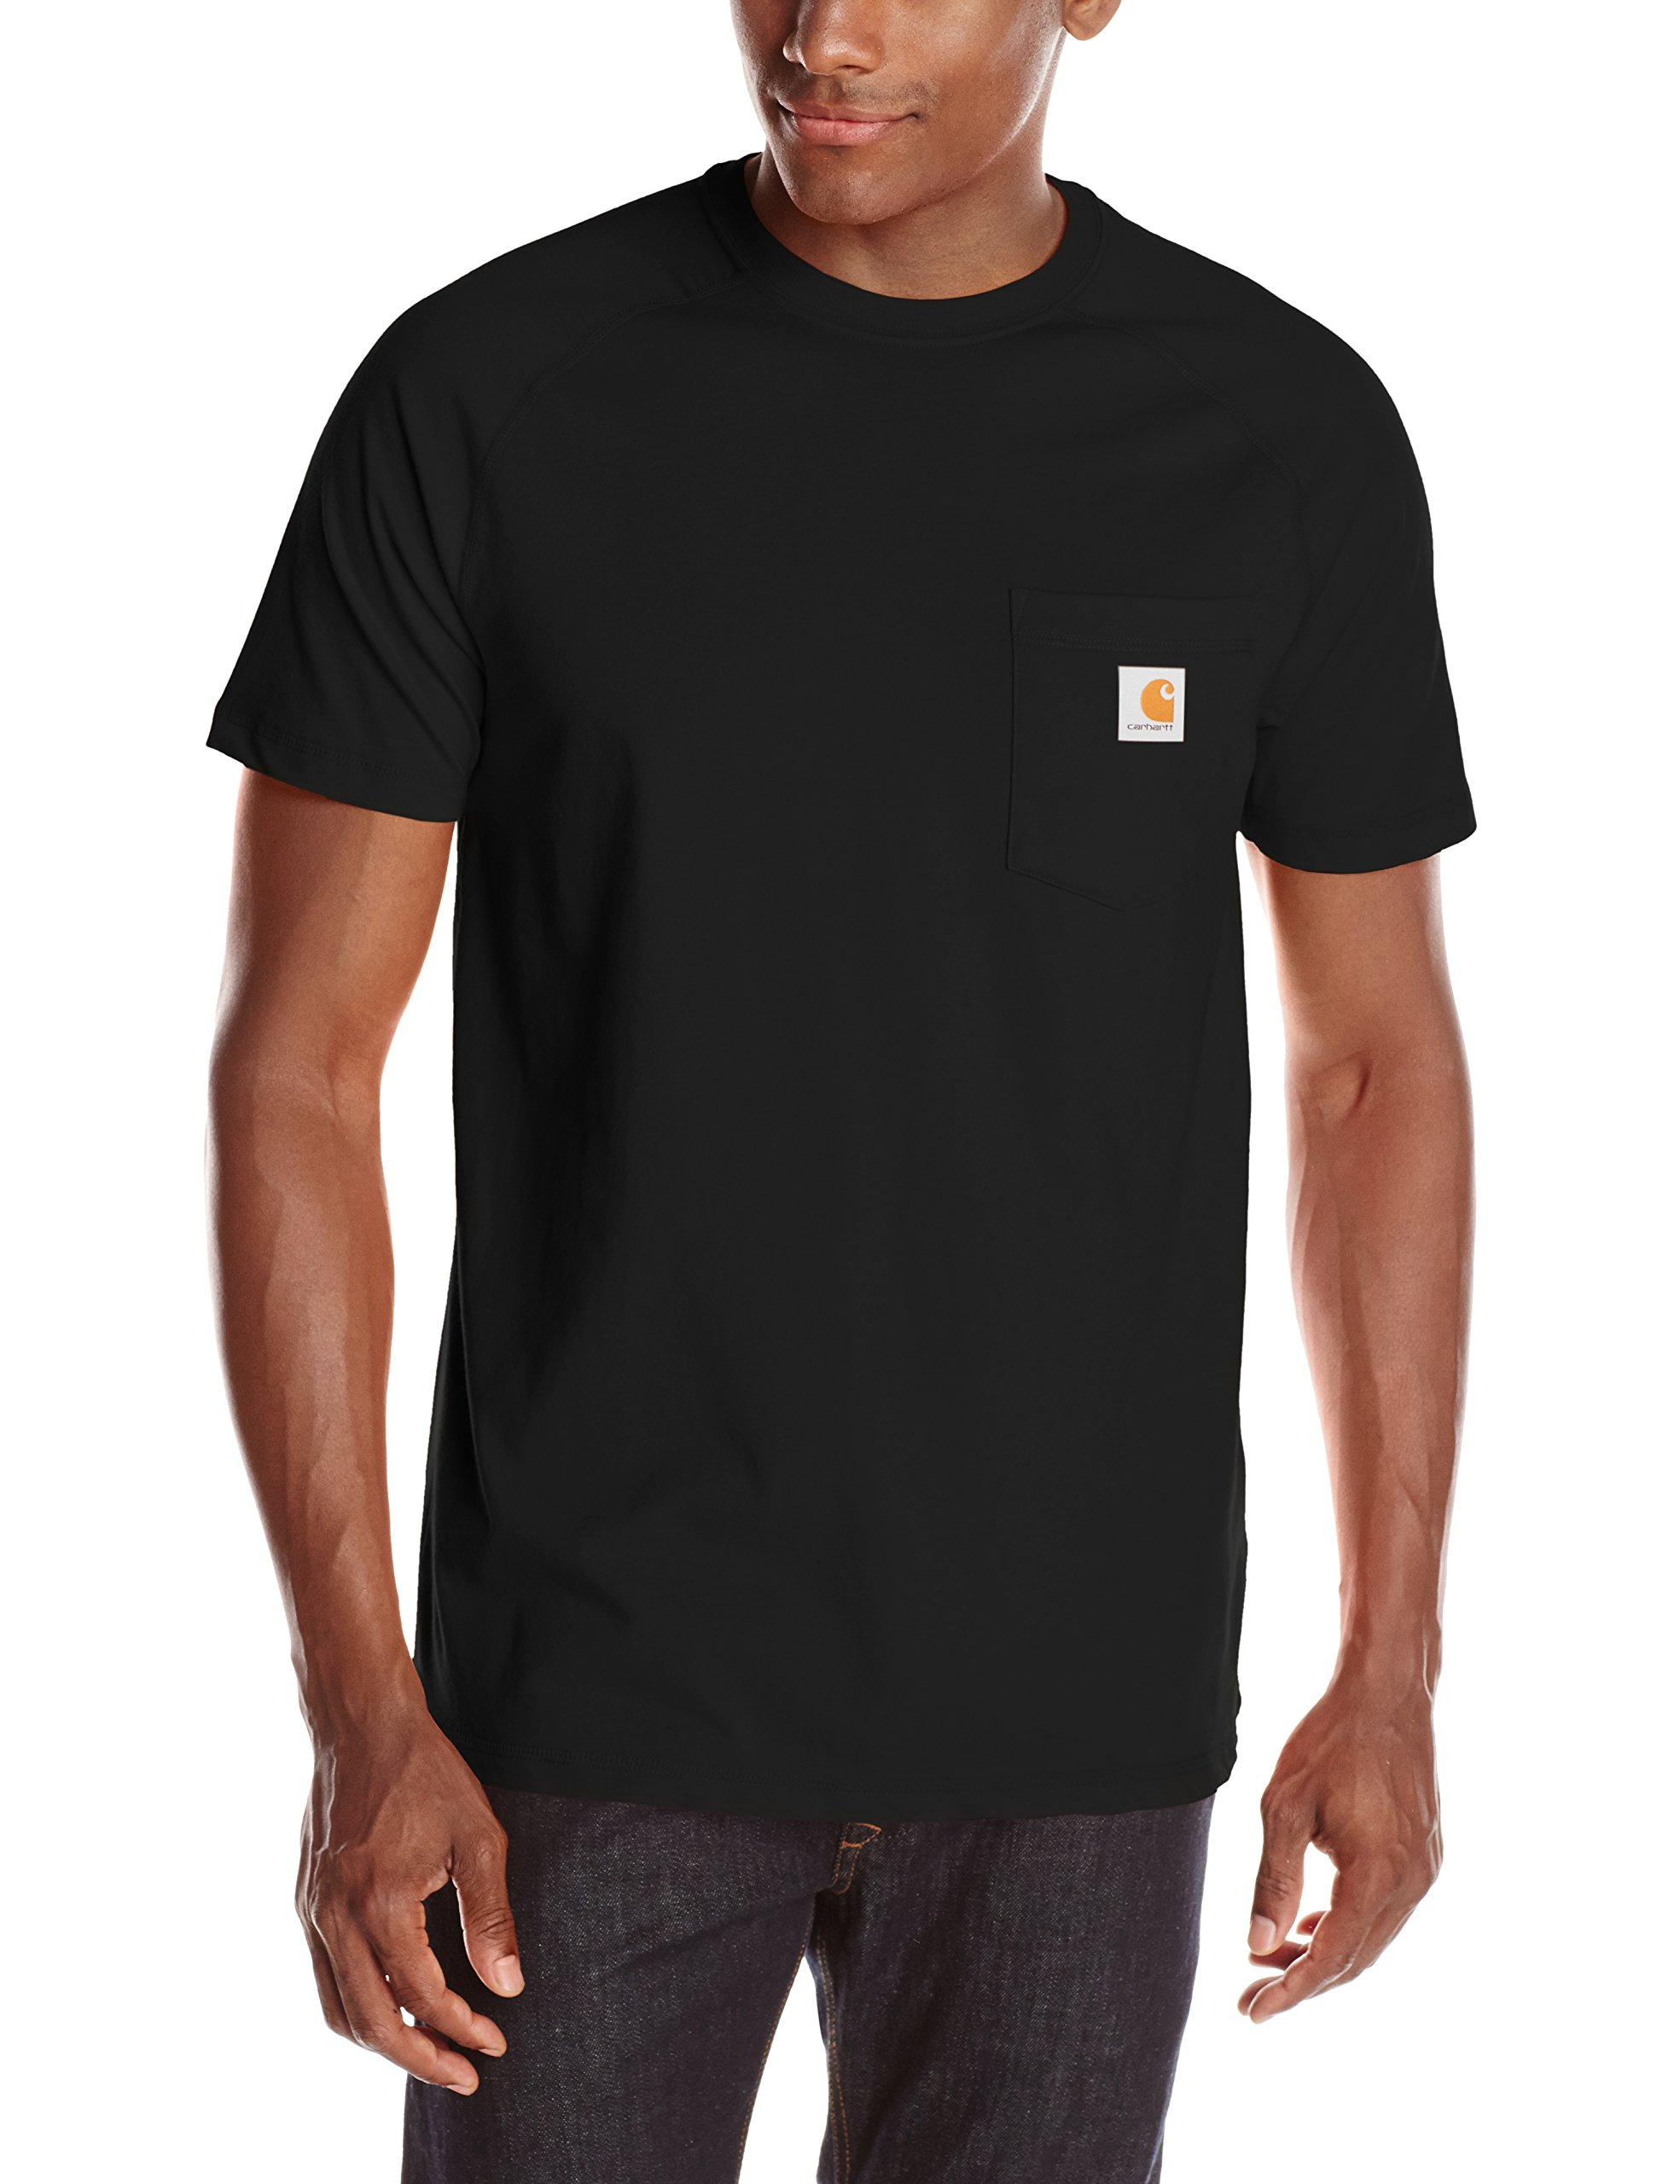 0bf0913326837 Carhartt Men's Force Cotton Delmont Short Sleeve T-shirt product image